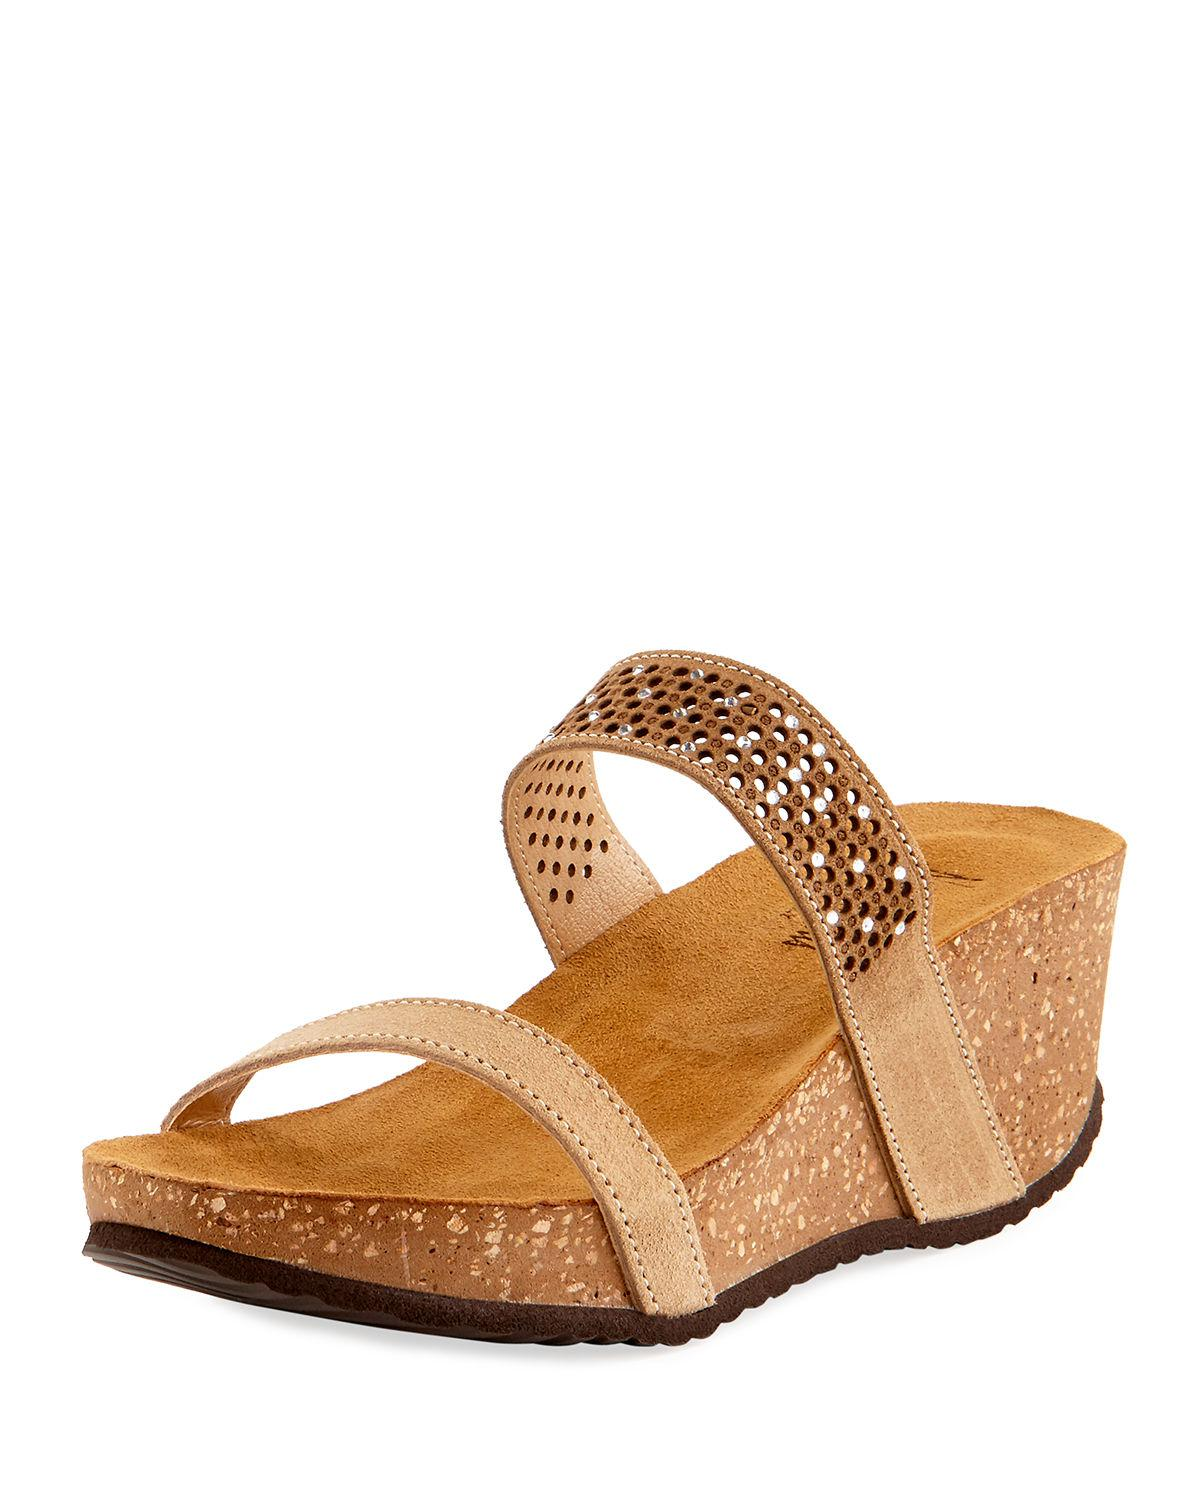 Emmie Two Band Woven Wedges auXCKfo5